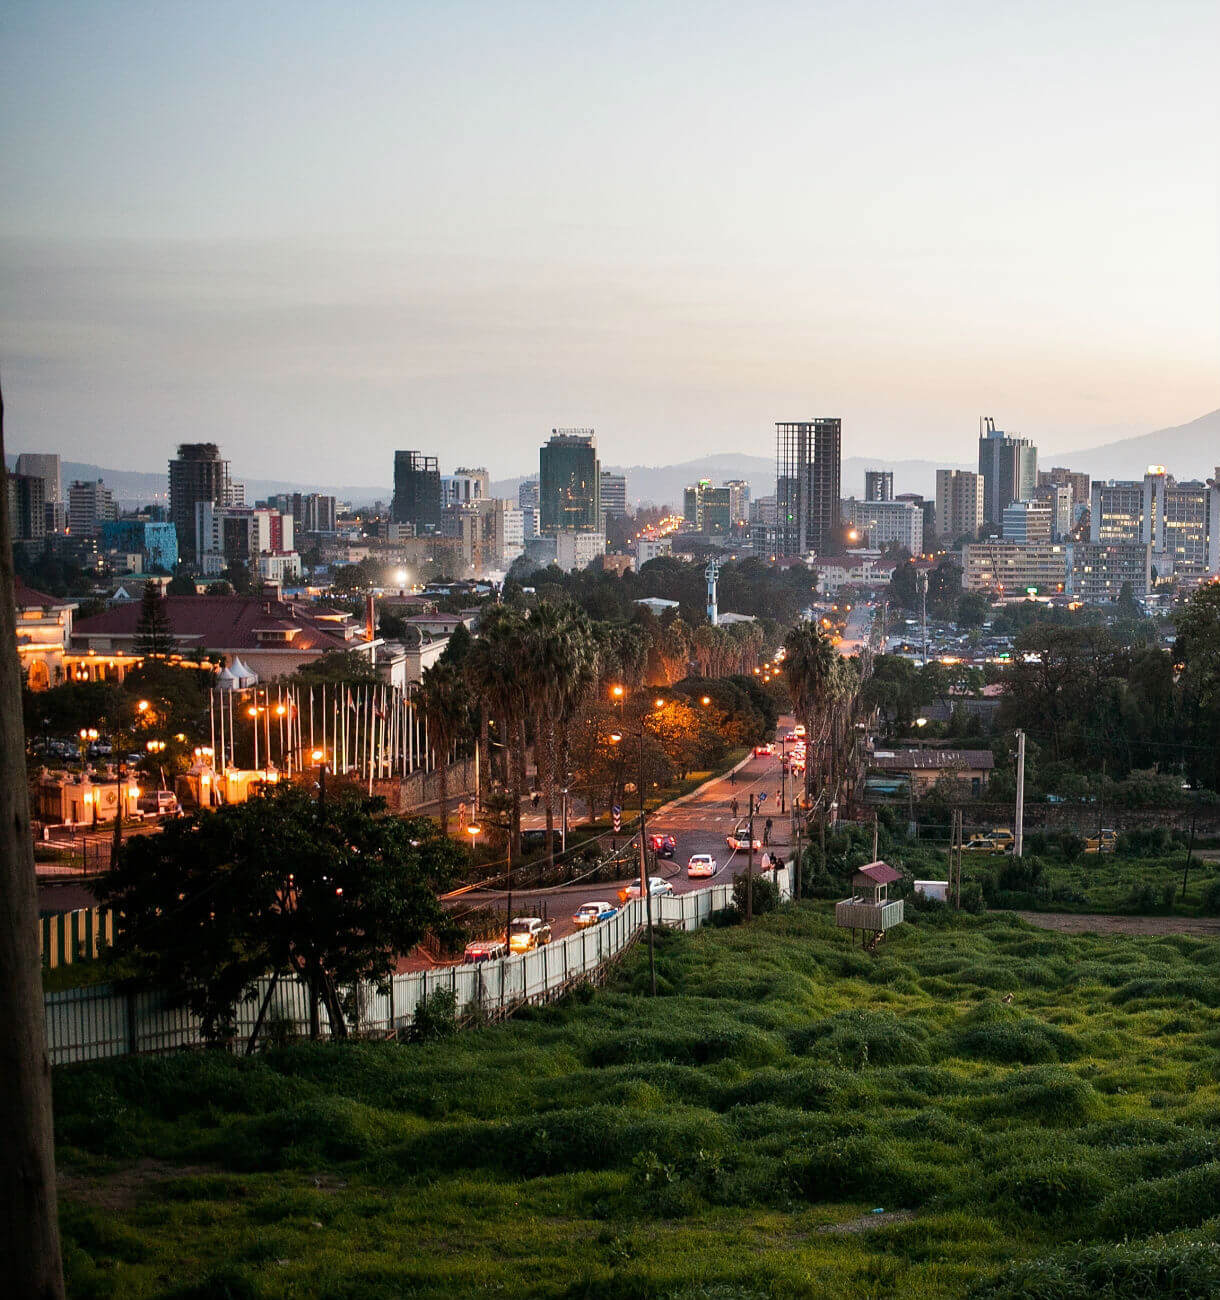 Ethiopias Capital seen from a hill just after sunset